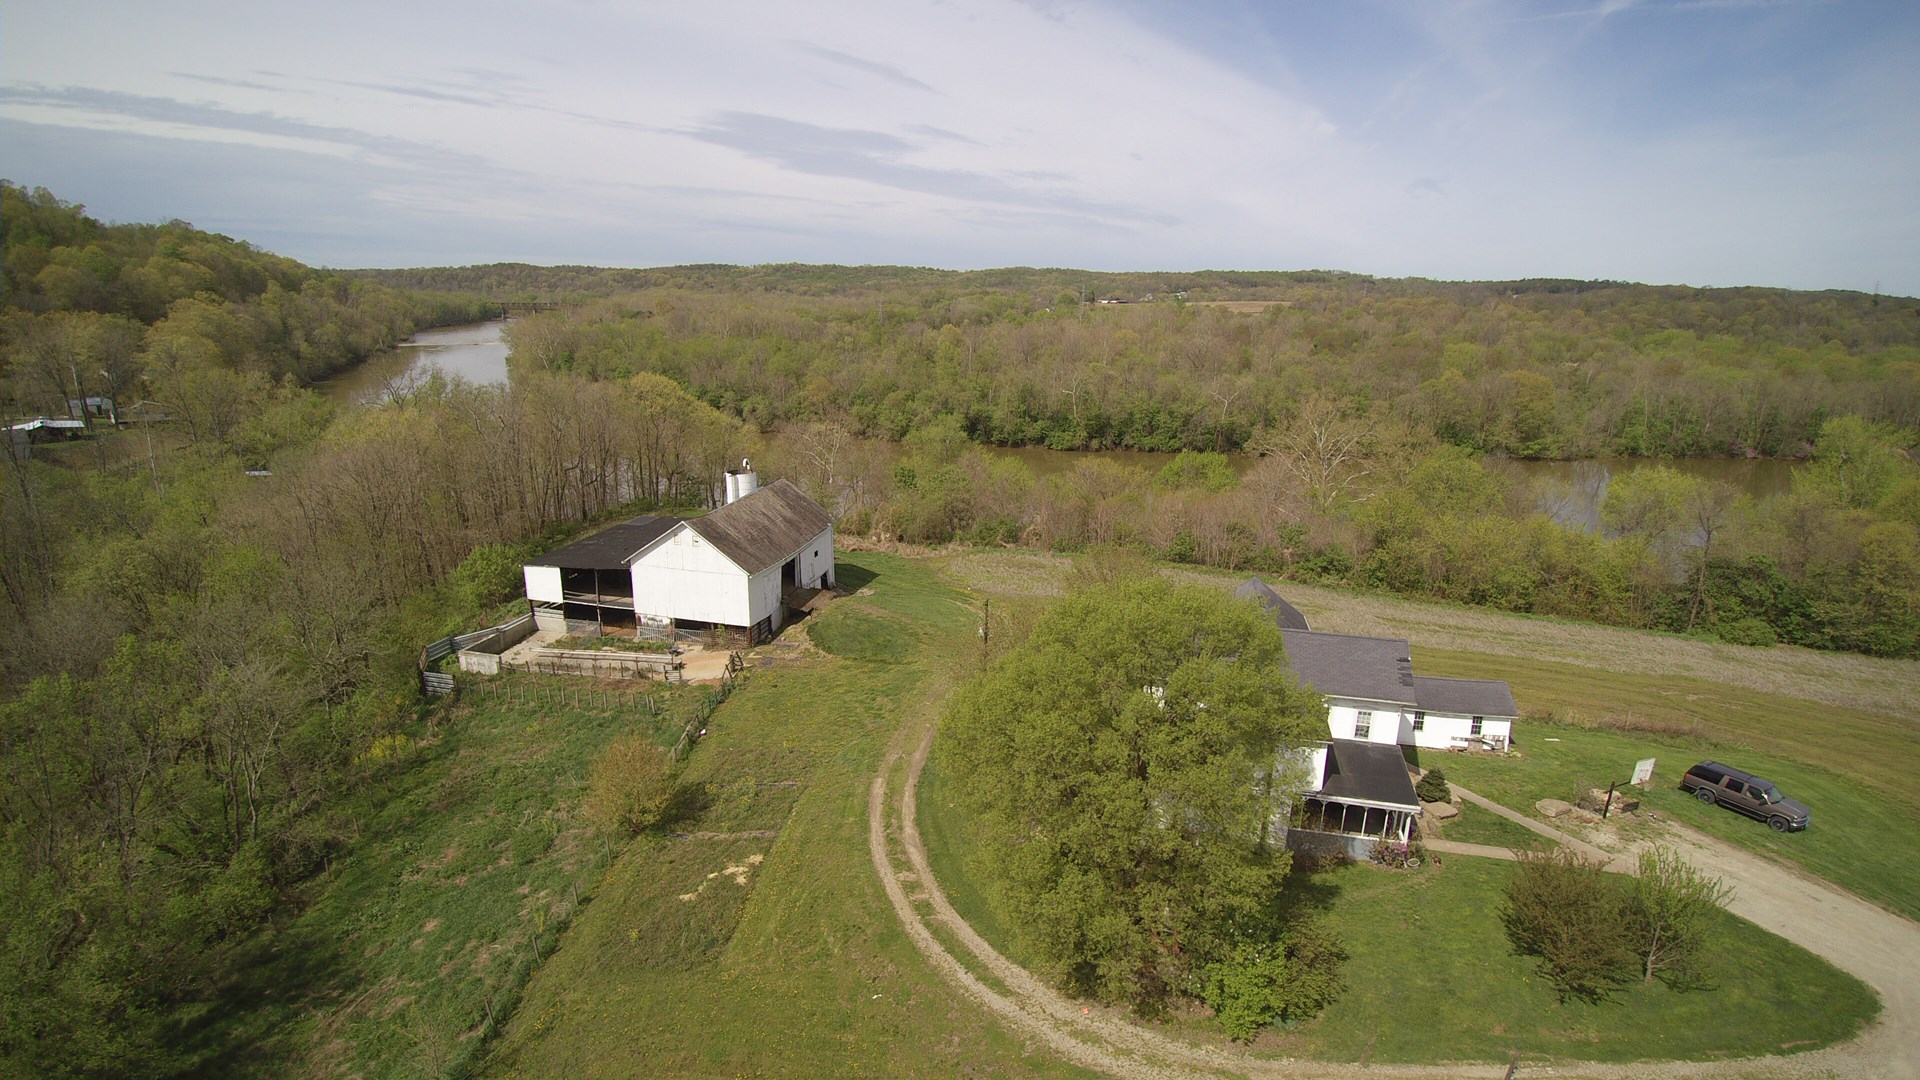 Muskingum River Frontage | Tract 3 | 20 +/- Acres | 2 Story Farm House & Barn